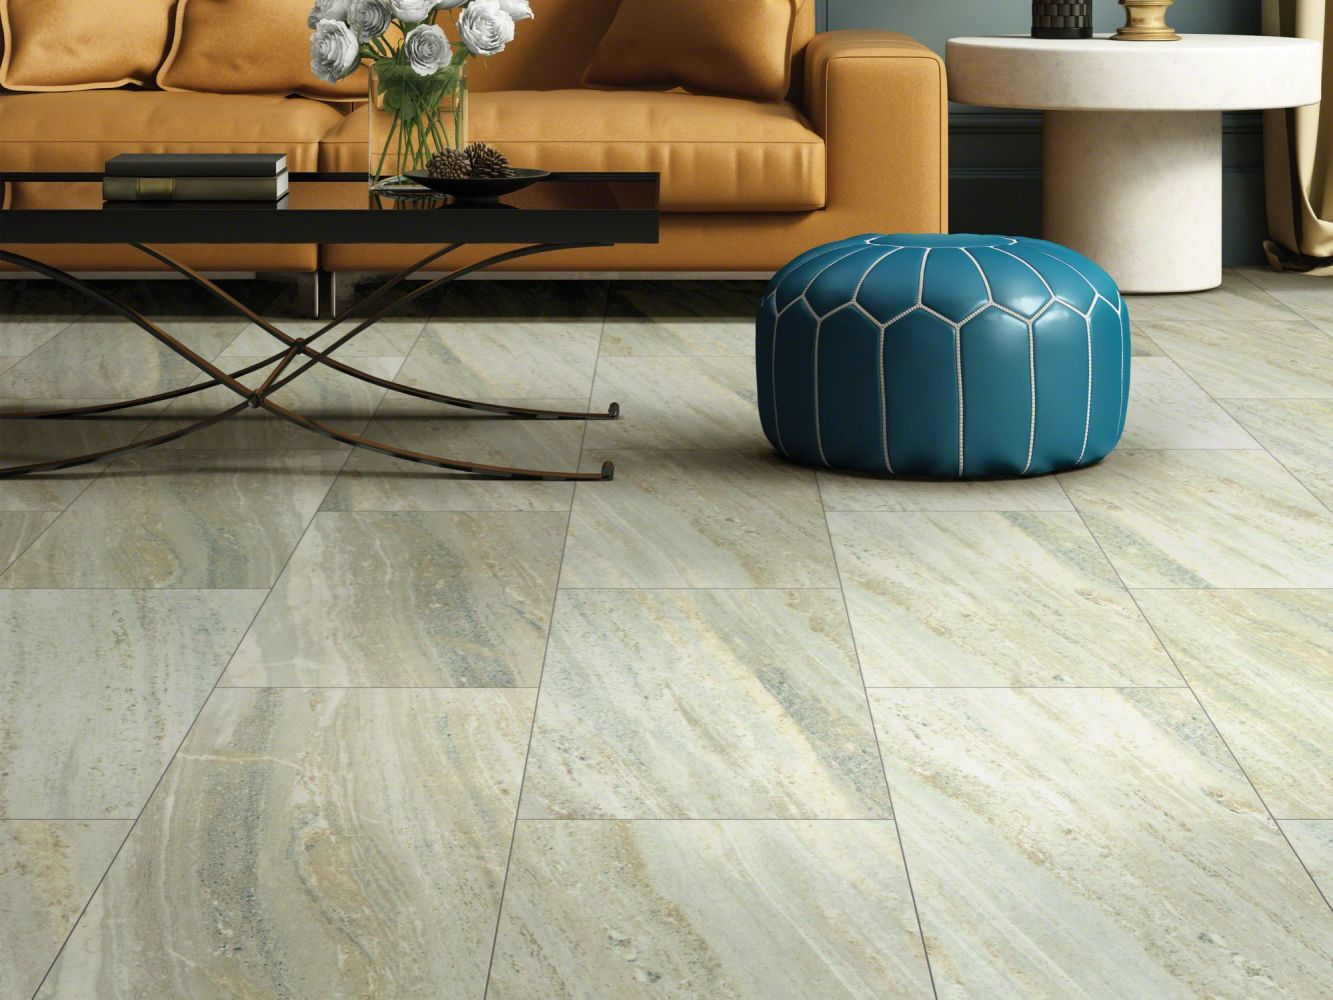 Shaw Floors Resilient Residential Set In Stone 720c Plus Boulder 00585_0834V